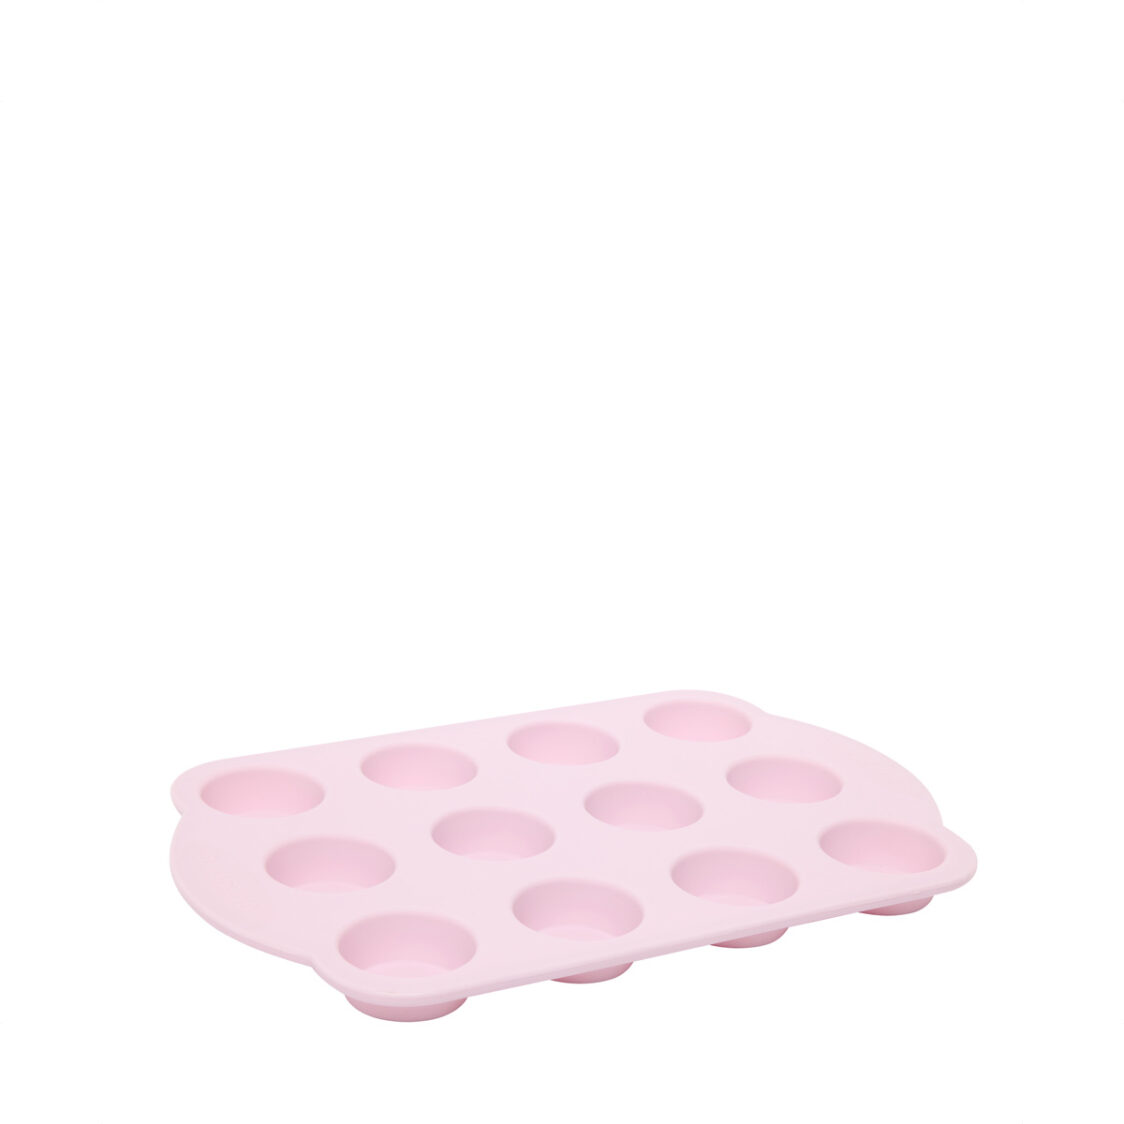 Wiltshire Bend N Bake 12 Cup Muffin Pan